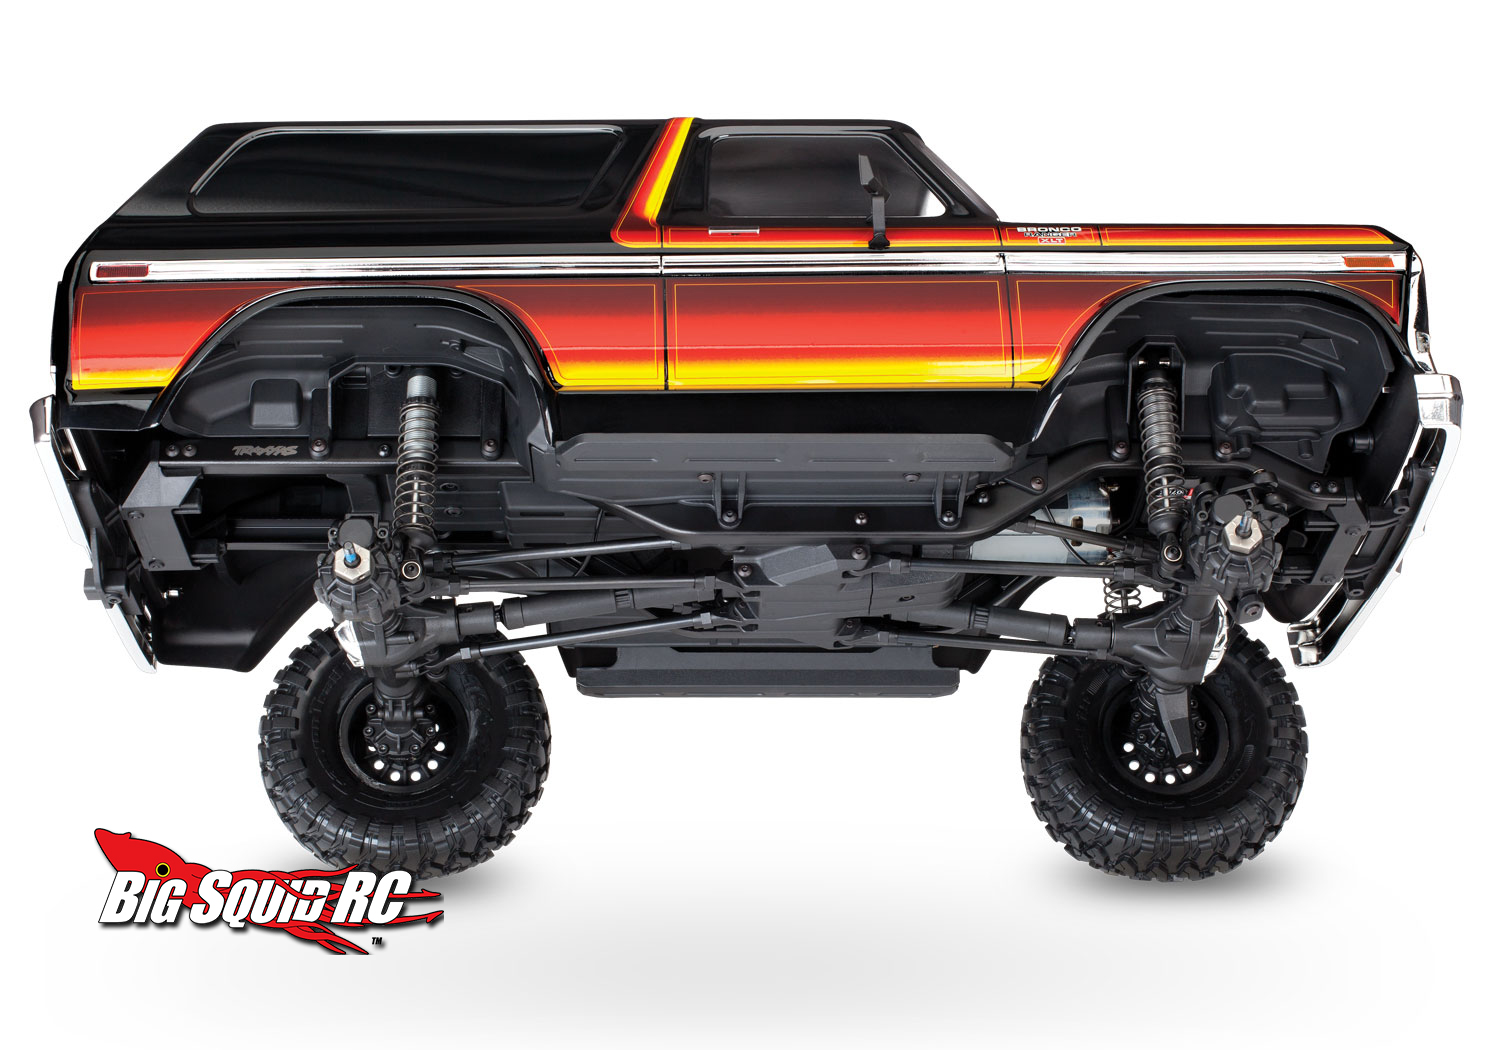 maxx rc car with Traxxas Trx 4 Bronco Info And Details With Video on Radshaperc Box Trailer Kit 3 also New 2018 Can Am Maverick Models Arrive To Tackle Trails Climb Rocks additionally Event Coverage Mmrctpa Truck Tractor Pull In Sturgeon Mo in addition 3410 00 Karosserie Traxxas 1 8 Rat Rod Klar P 56838 likewise 132091879026.